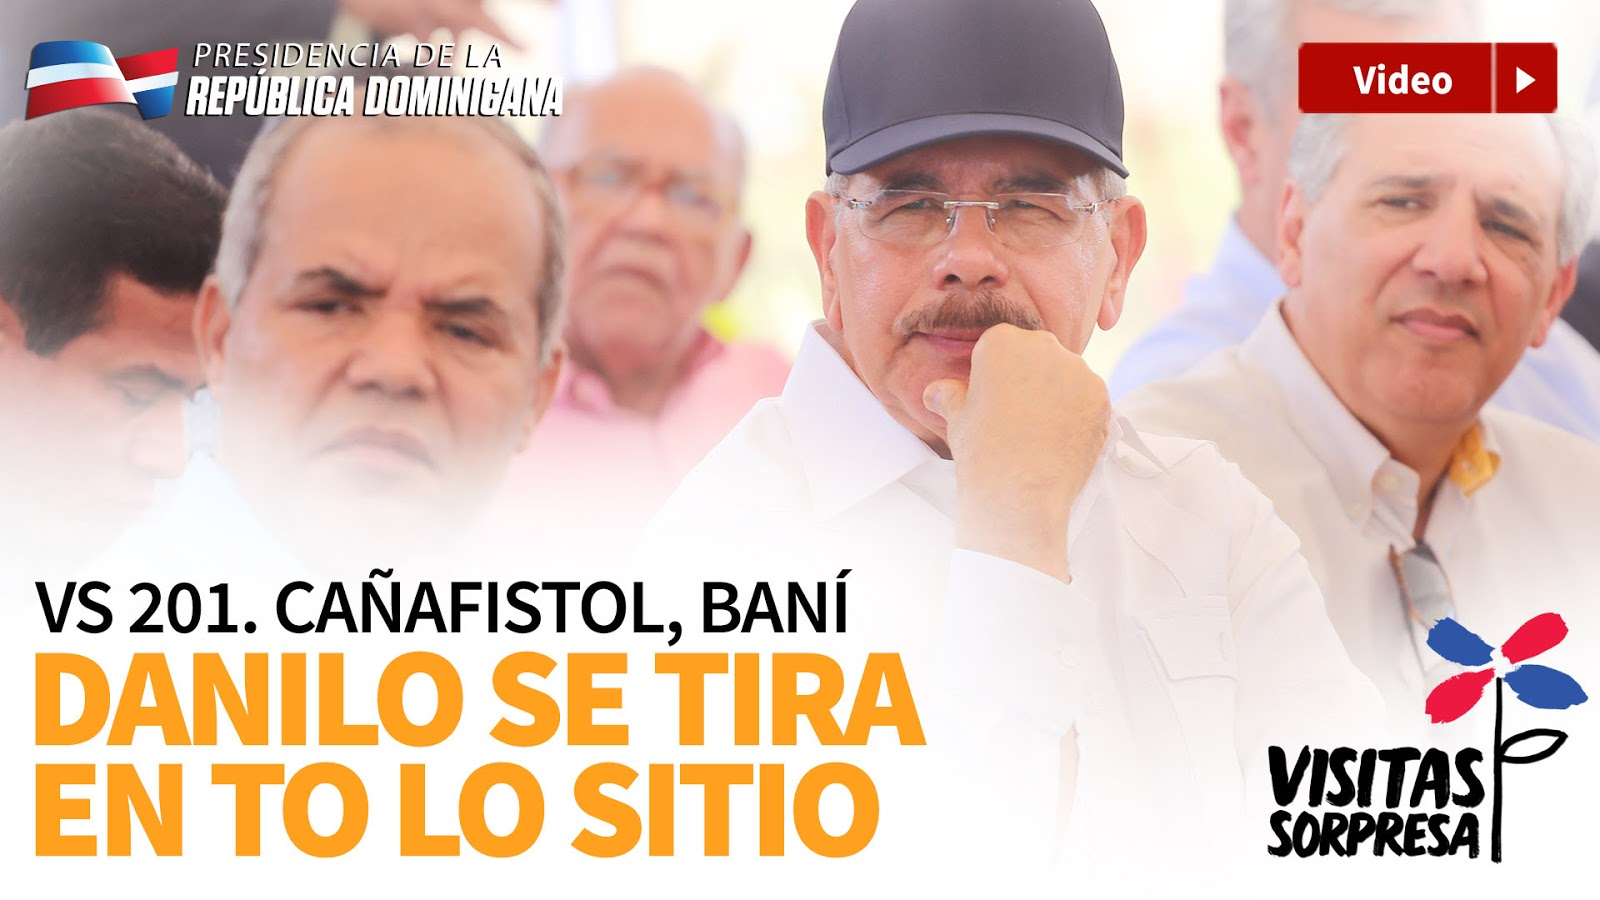 VIDEO: Cañafistol, Baní. Danilo se tira en to' lo sitio